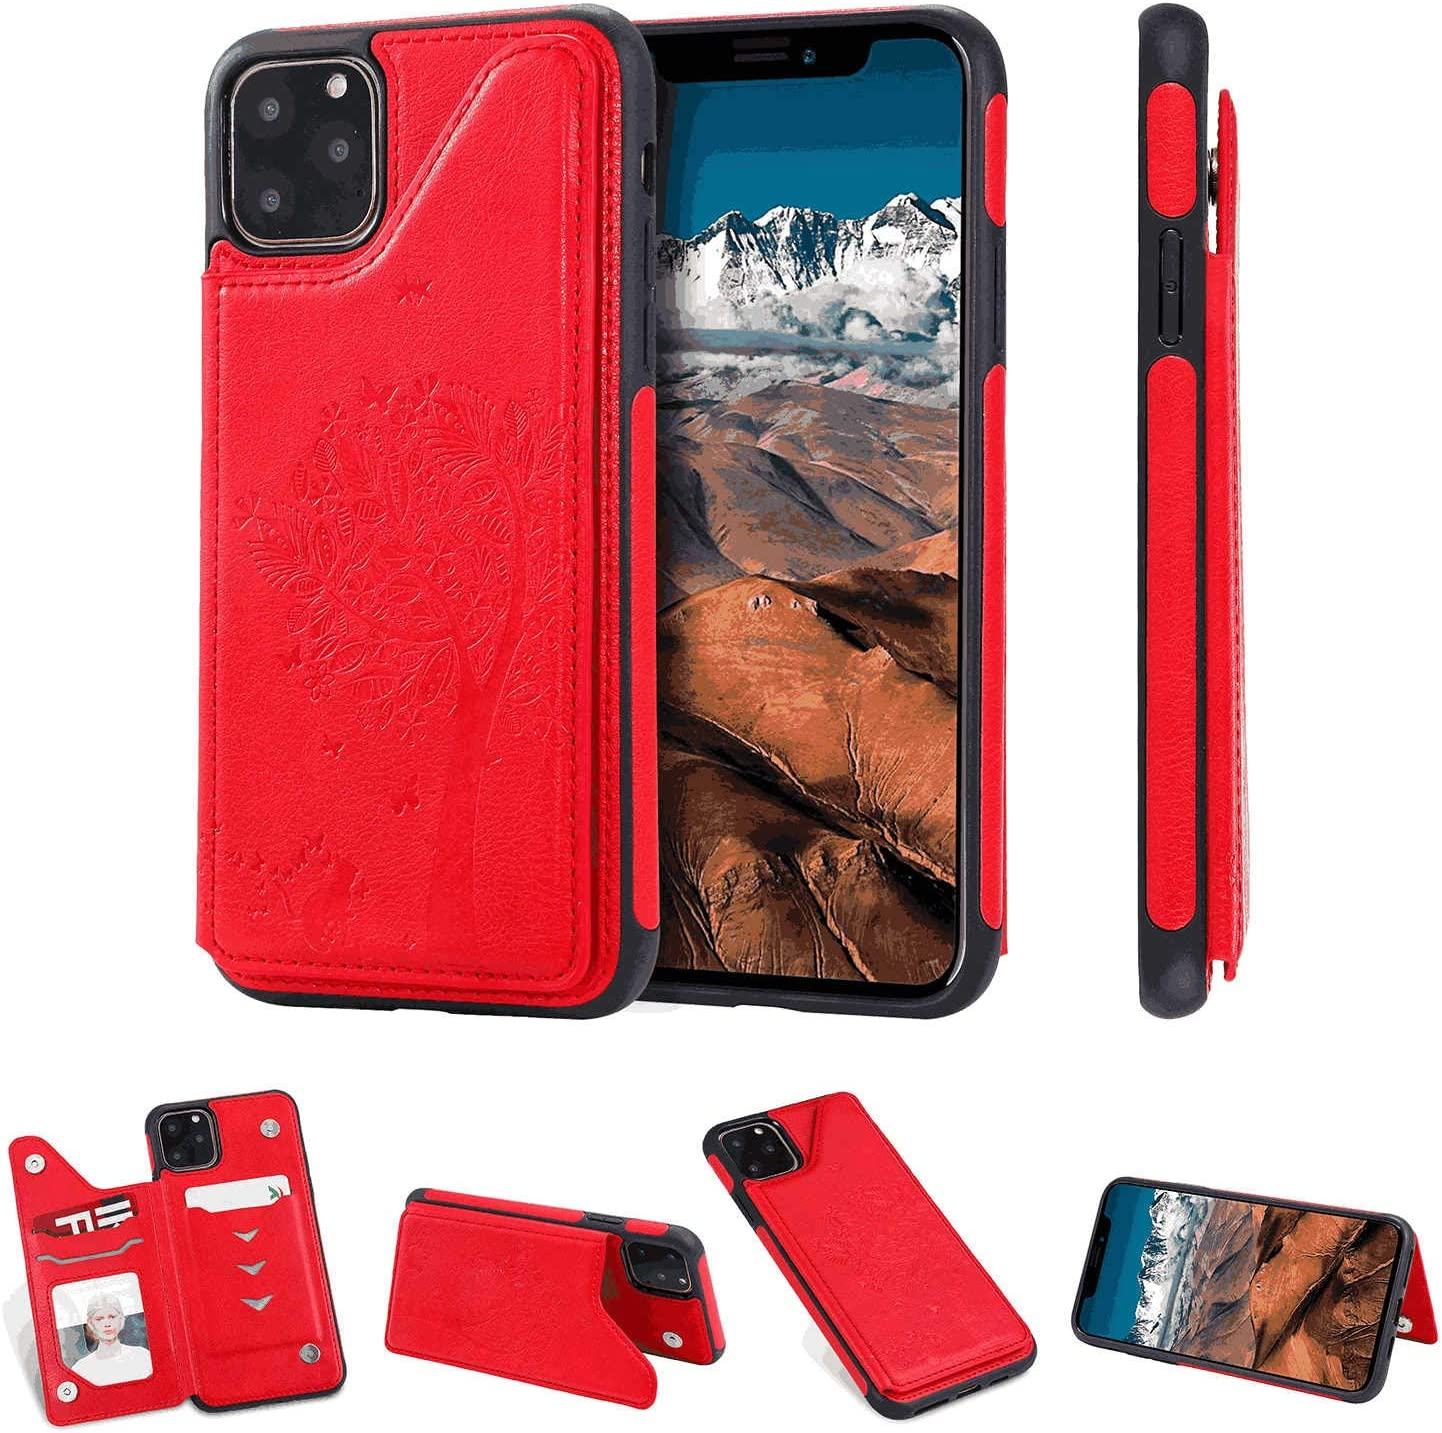 Cover for Leather Extra-Shockproof Business Kickstand Cell Phone Cover Card Holders Flip Cover iPhone XR Flip Case